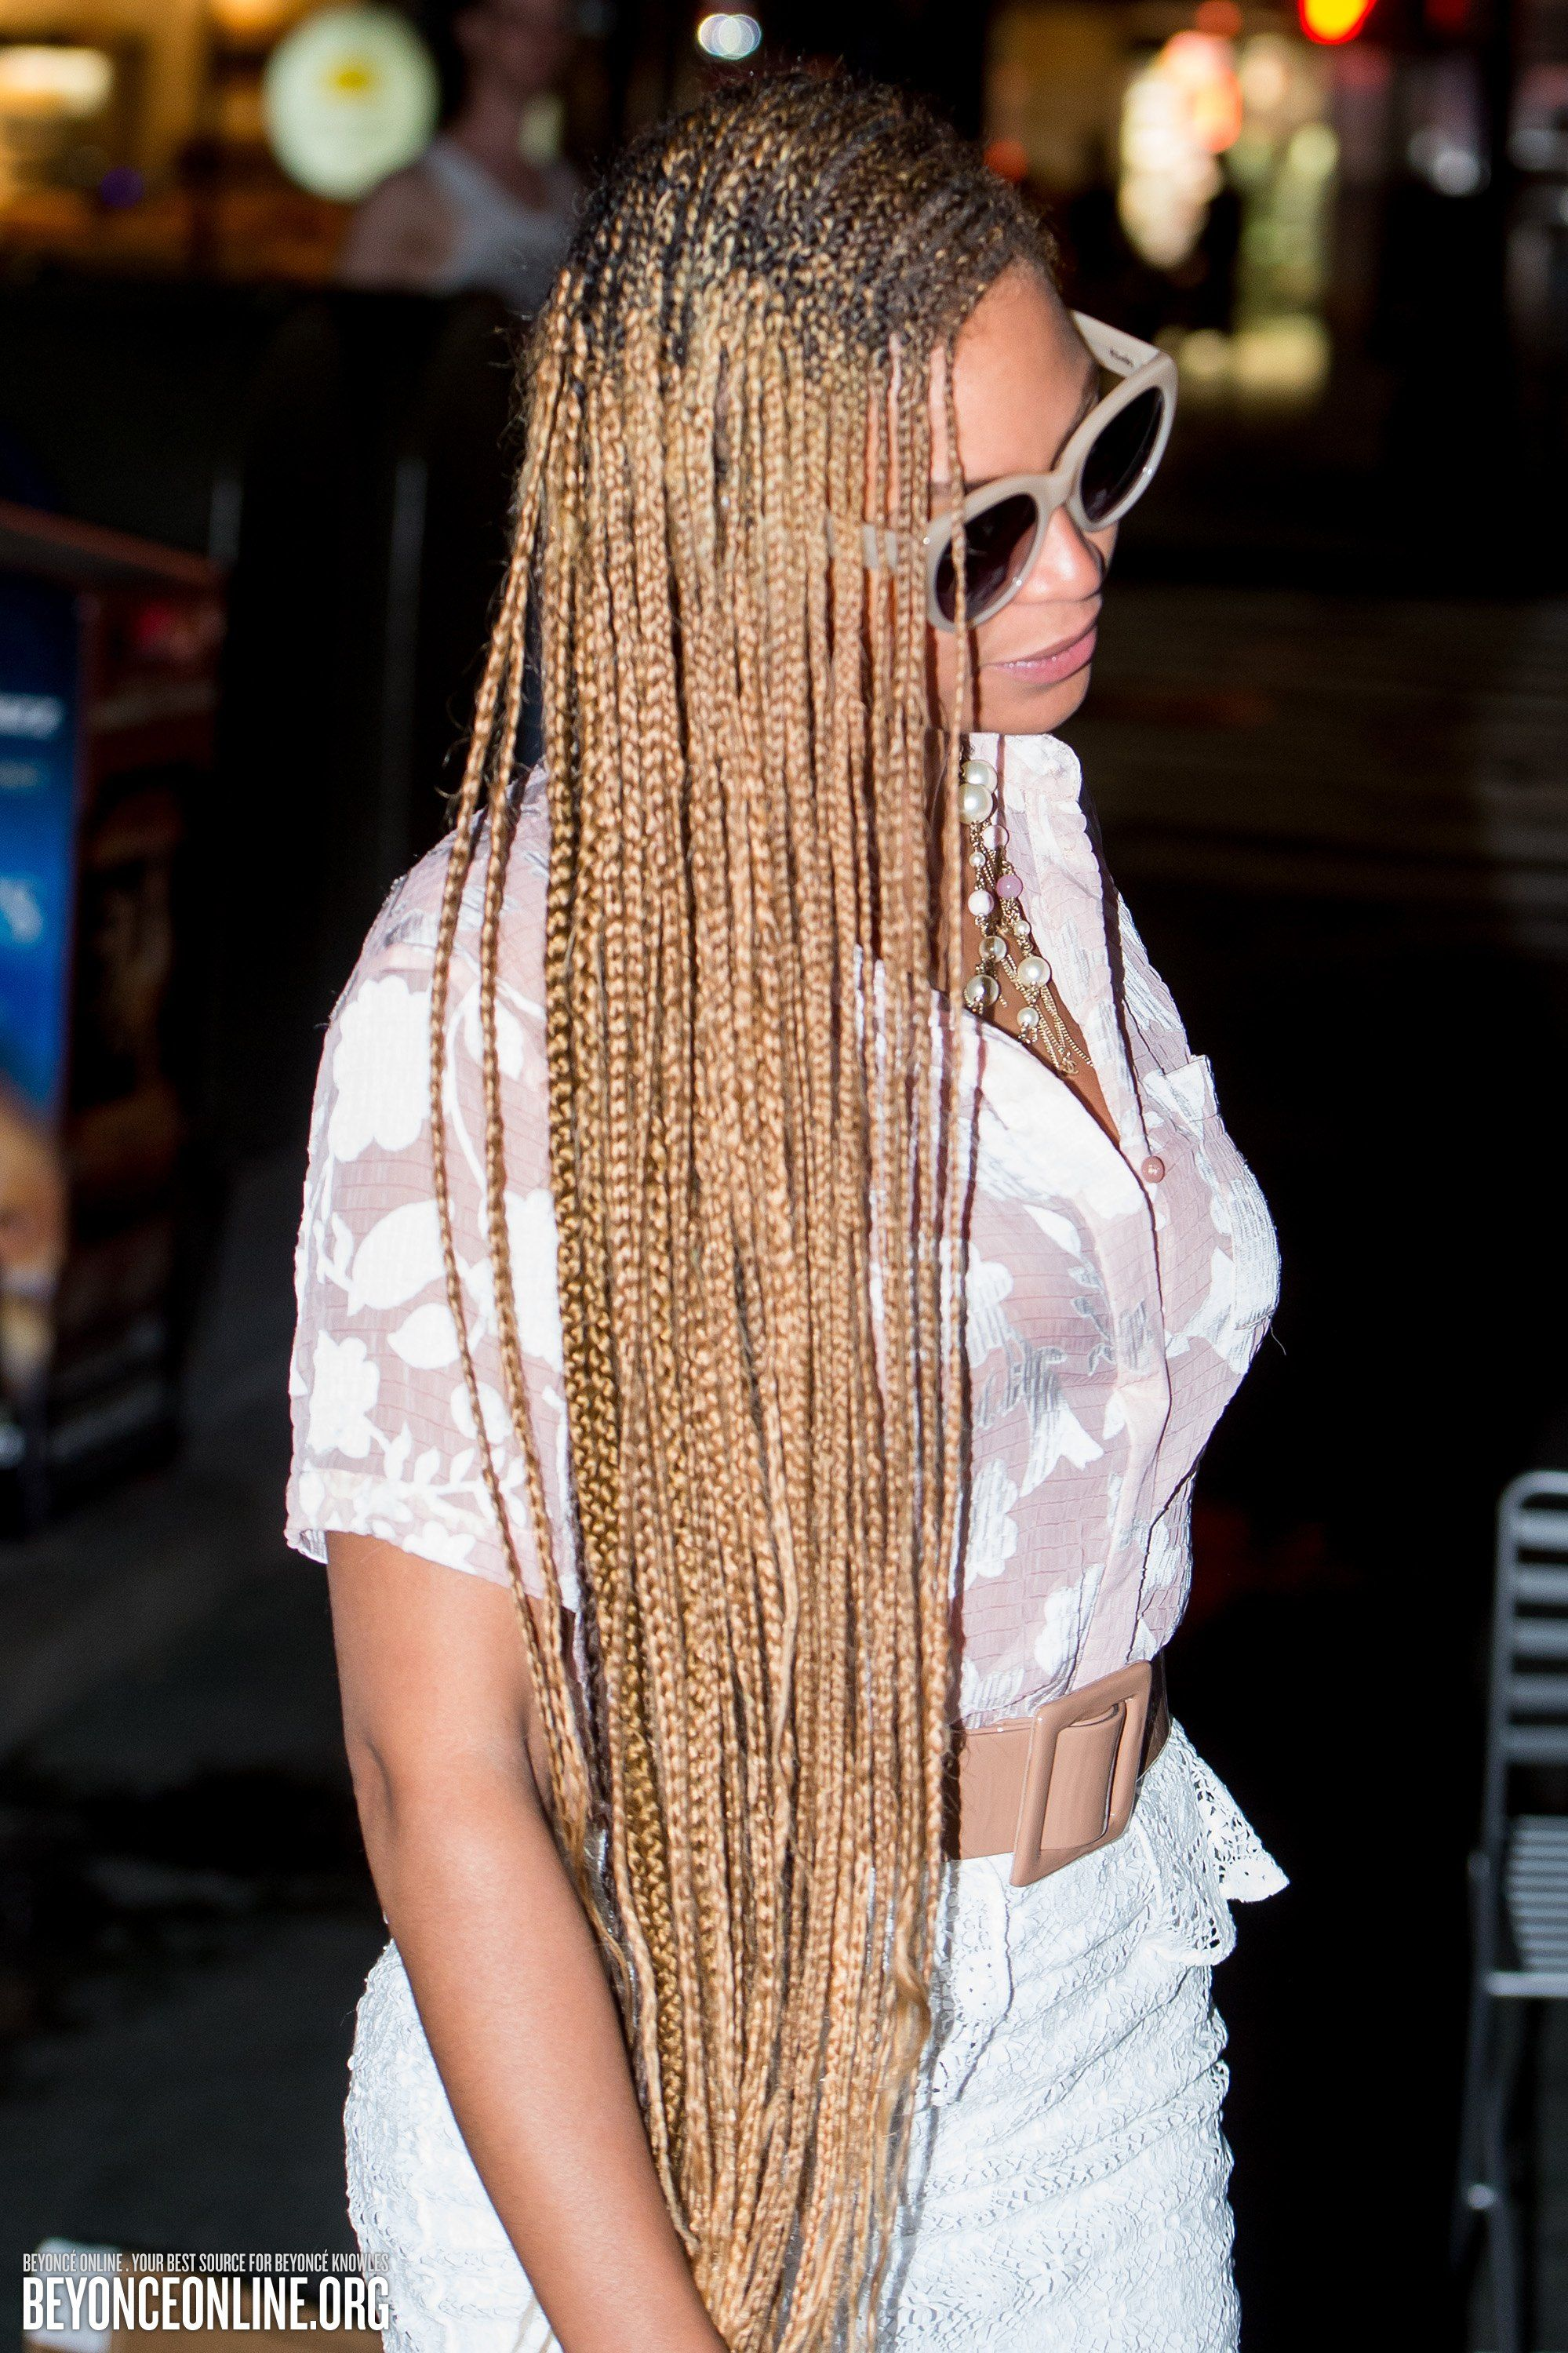 Hq11 Jpg Click Image To Close This Window Beyonce Braids